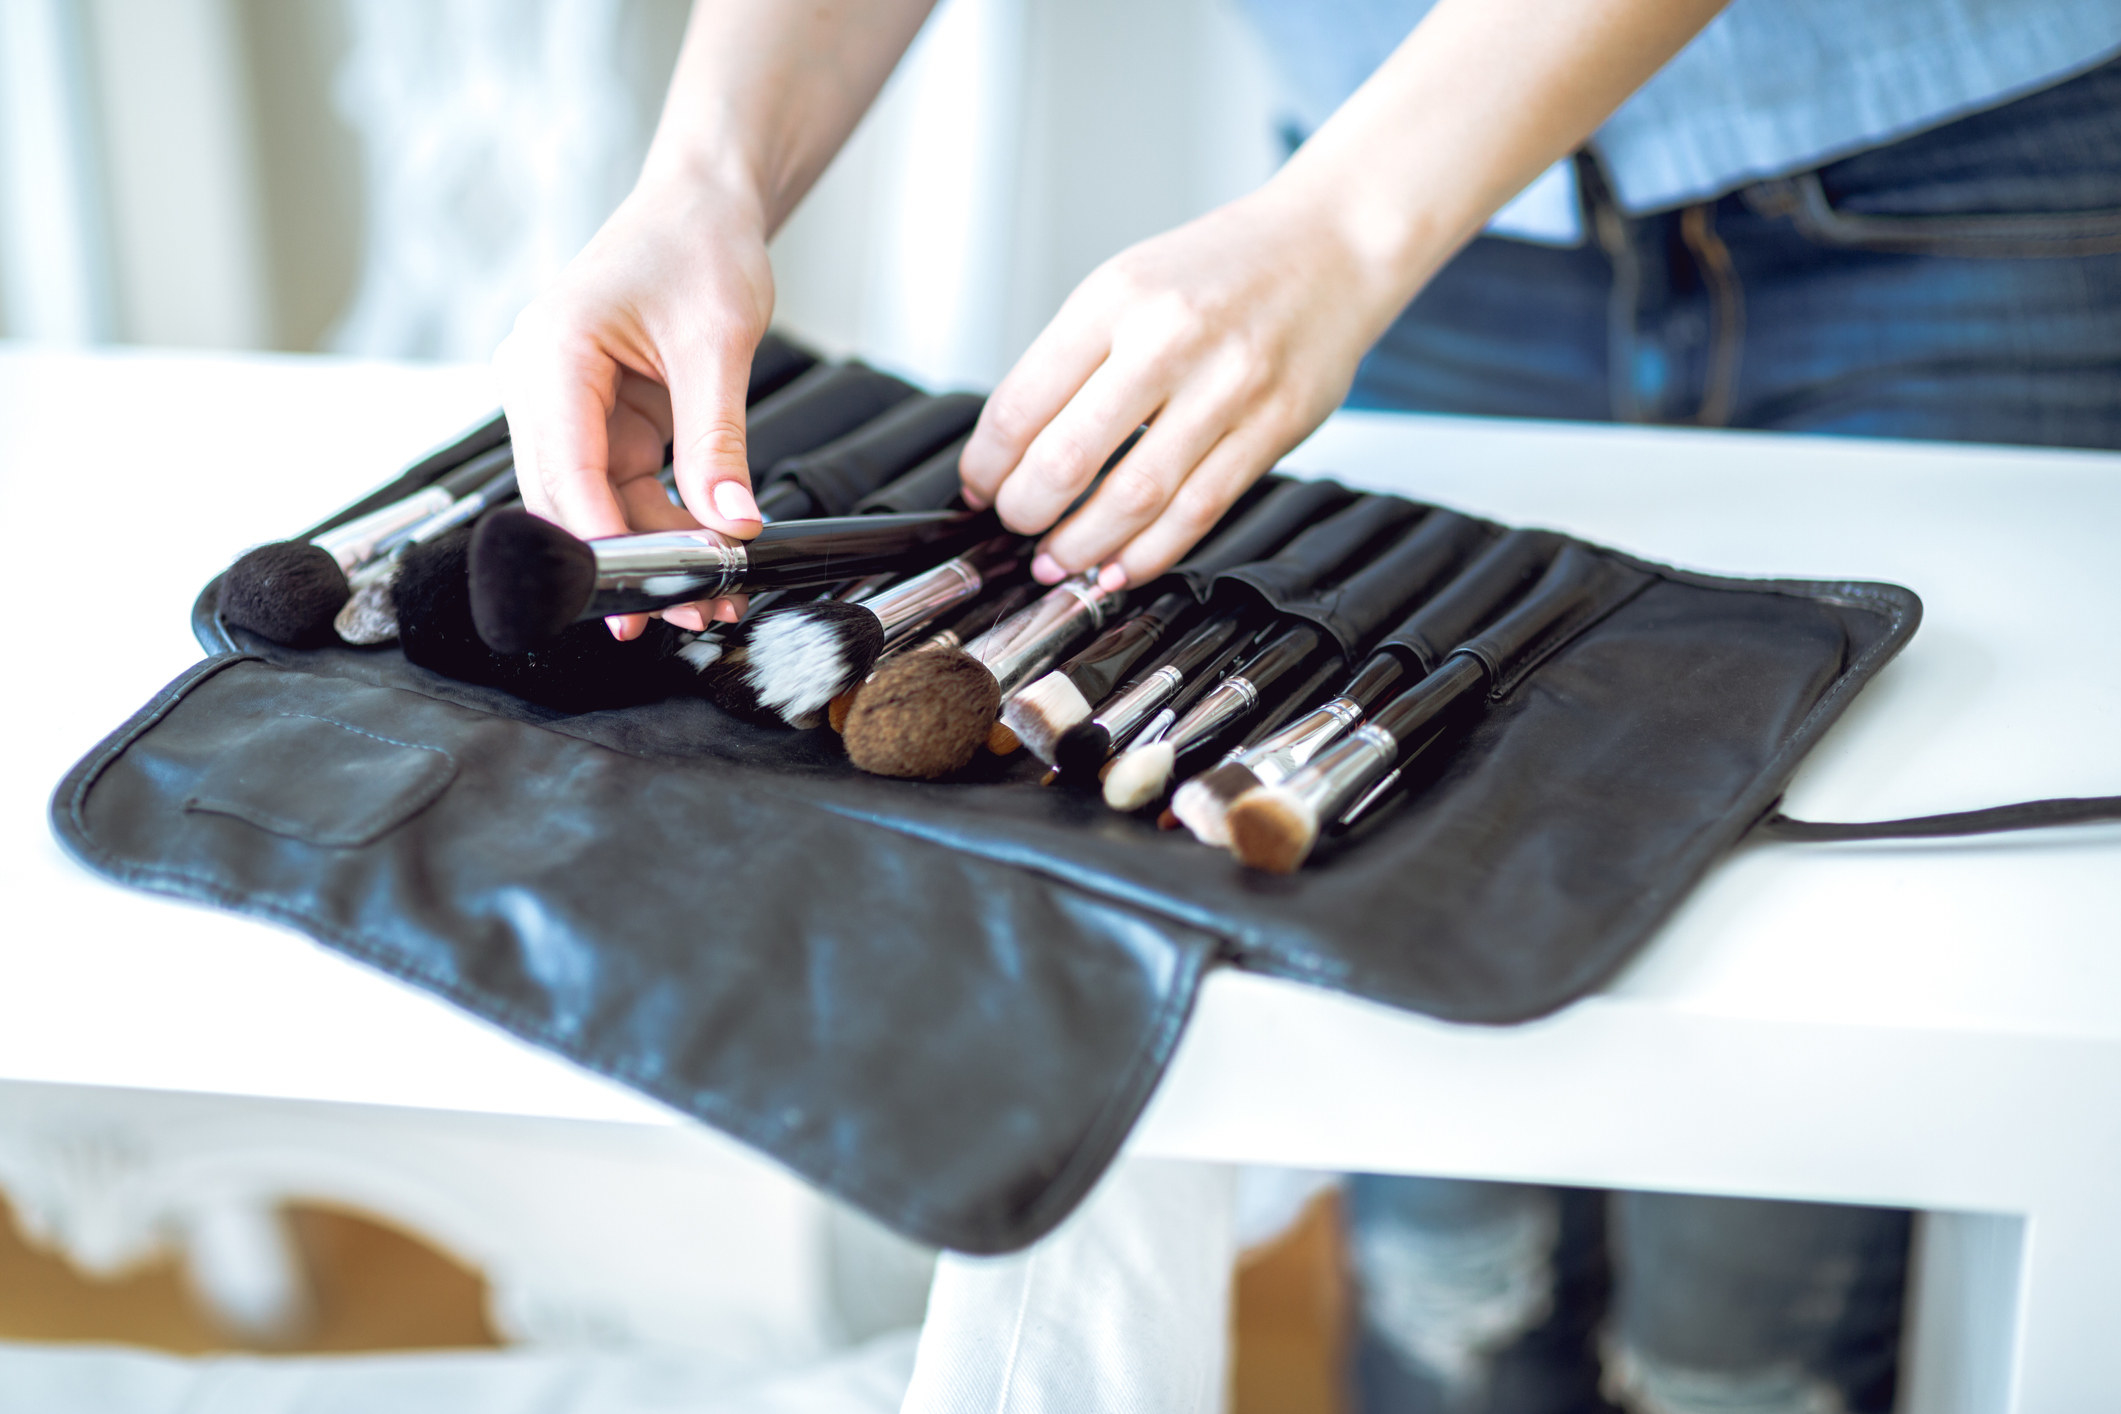 A makeup artist puts some brushes away in their kit